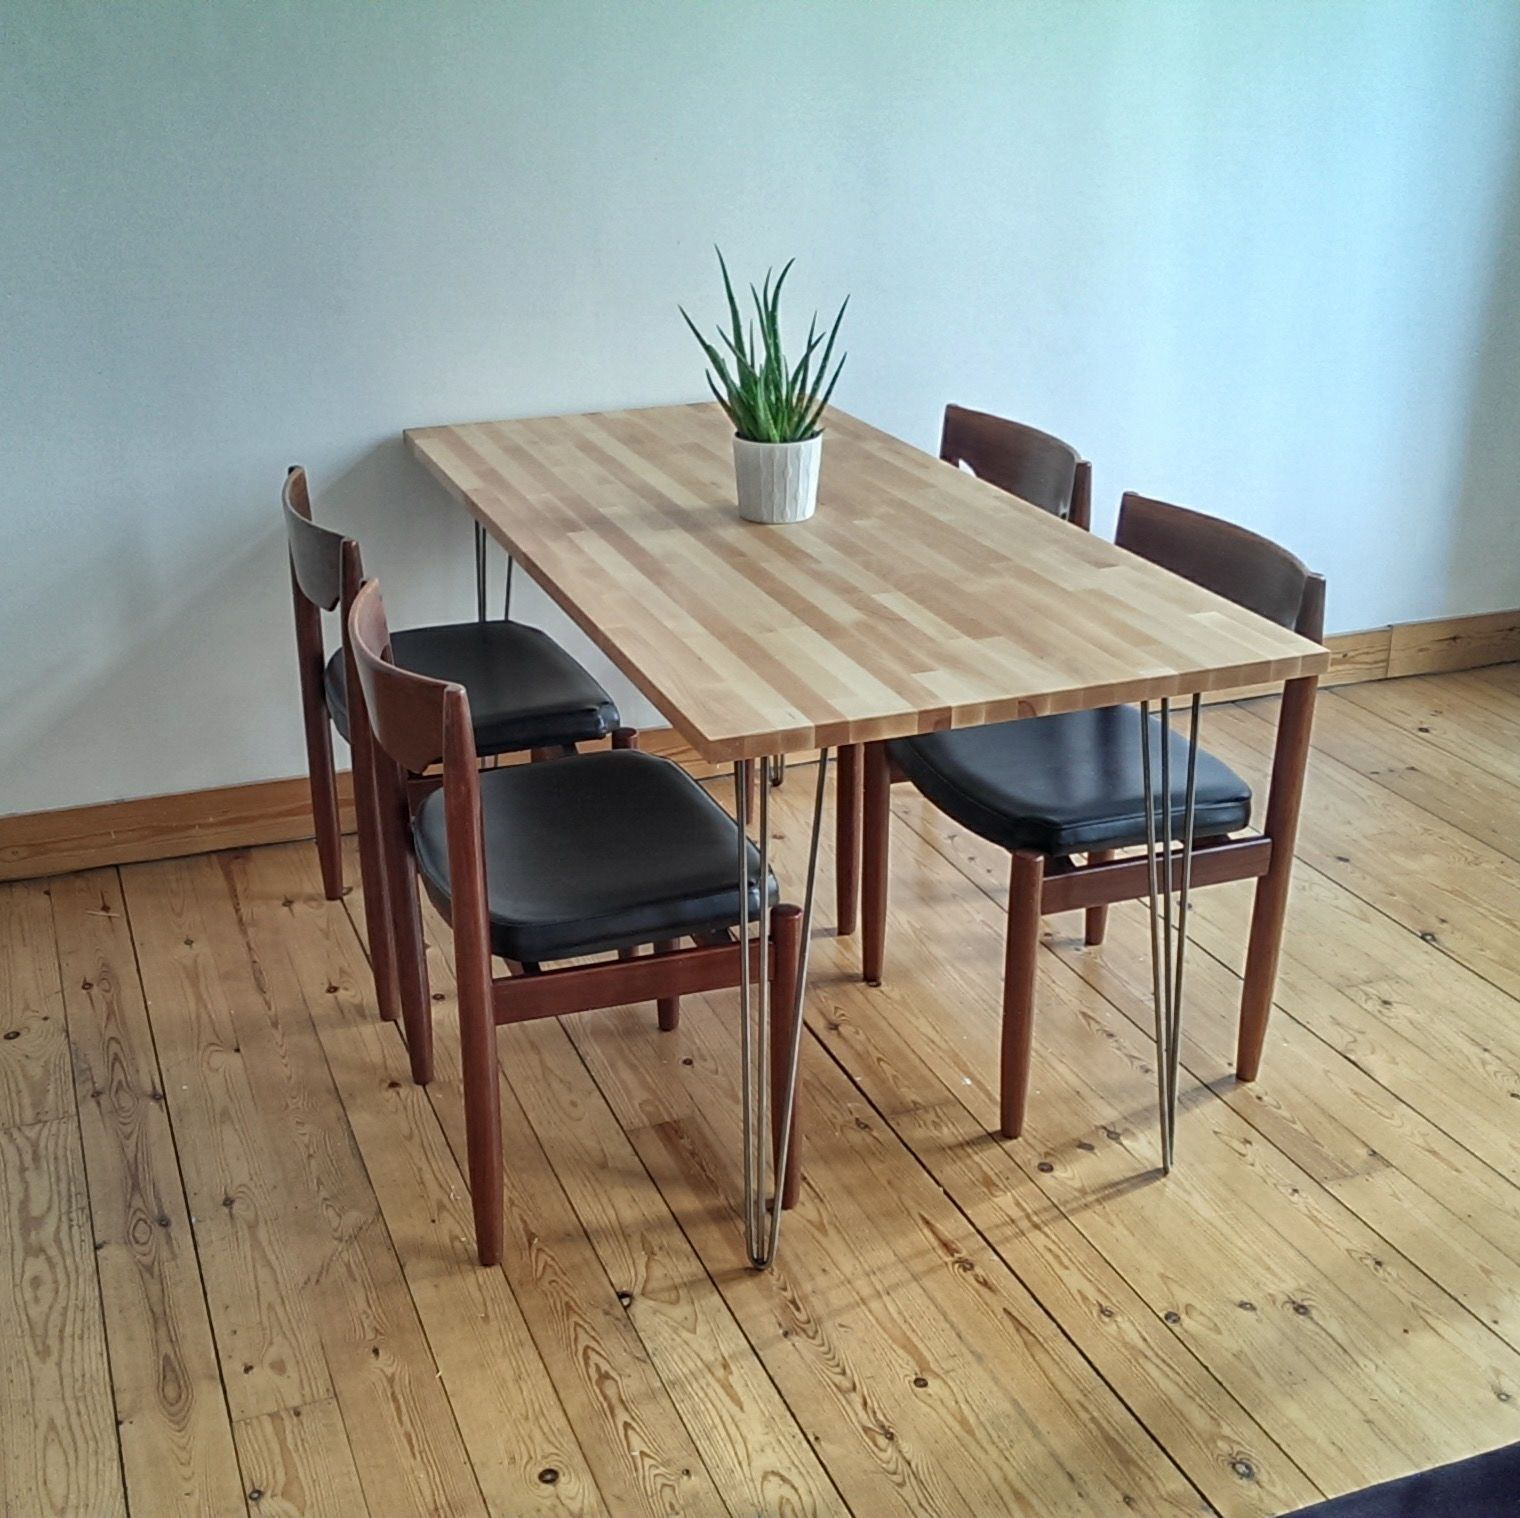 Our Scandinavian Style Dining Table I Made With An IKEA Gerton Tabletop And H